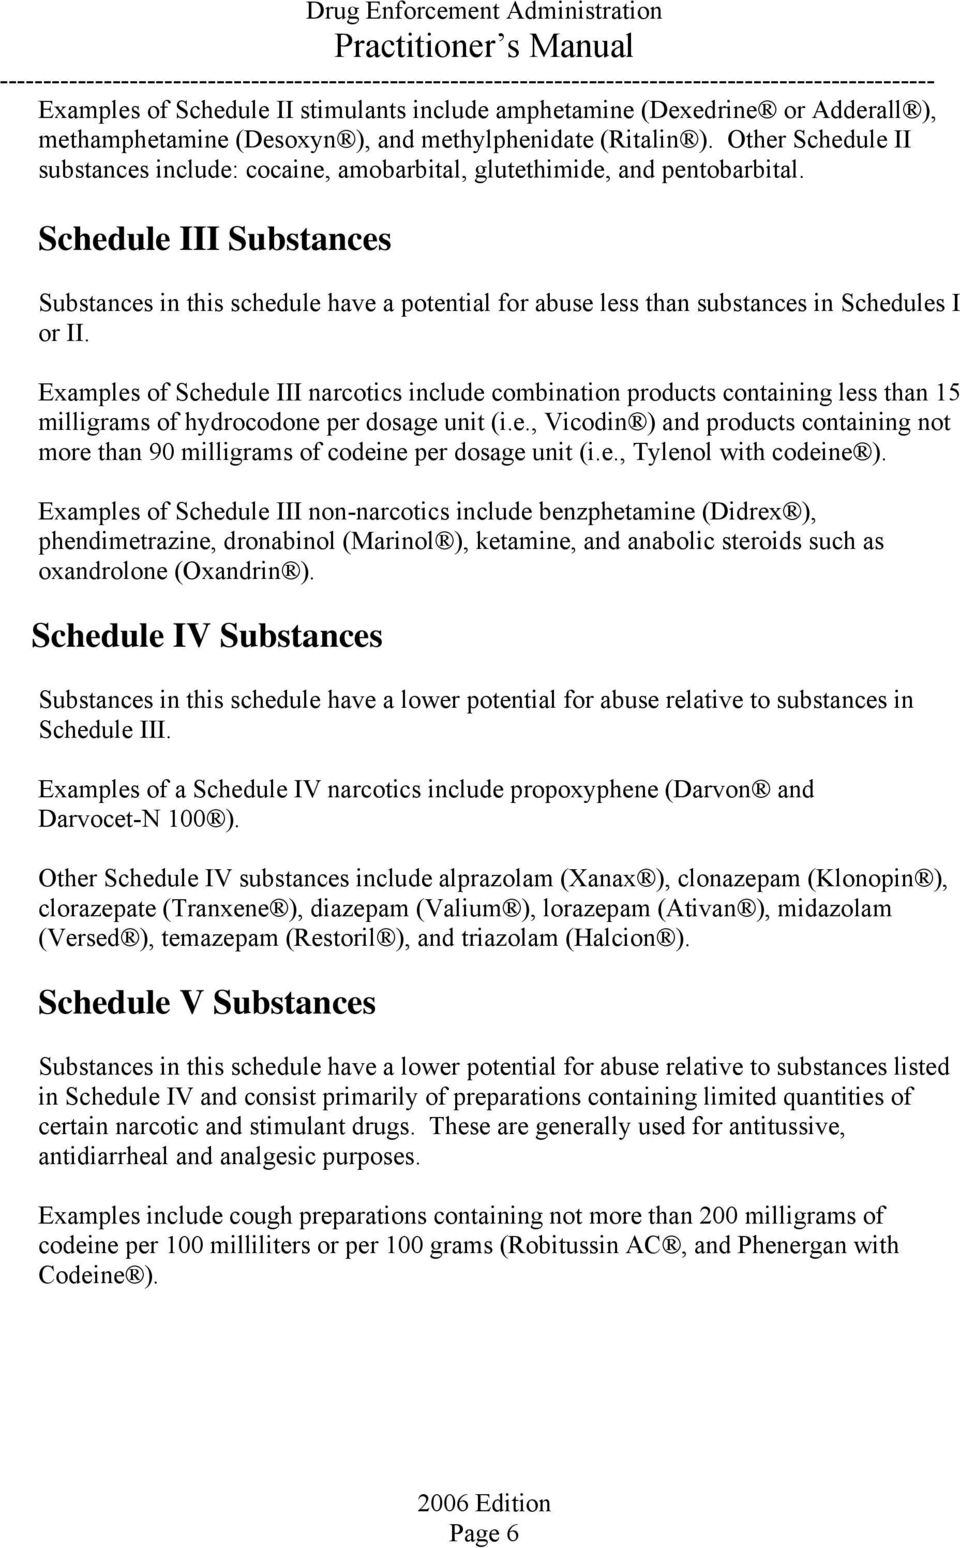 Schedule III Substances Substances in this schedule have a potential for abuse less than substances in Schedules I or II.